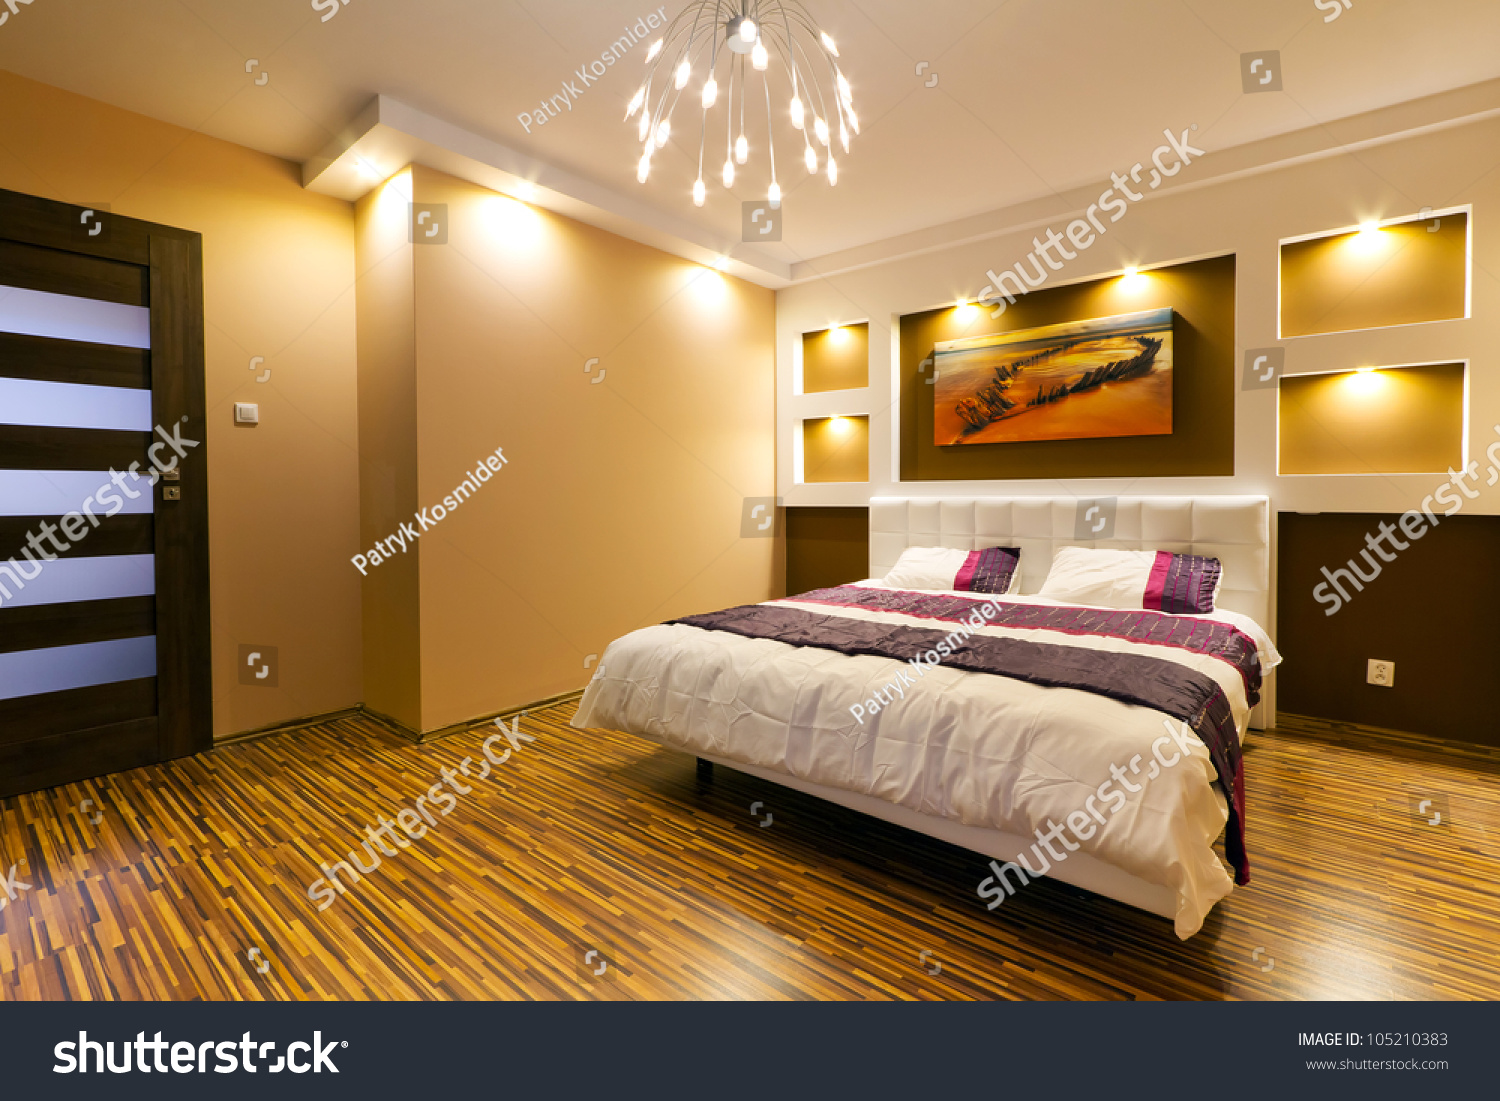 Modern Master Bedrooms Modern Master Bedroom Interior Picture Shipwreck Stock Photo